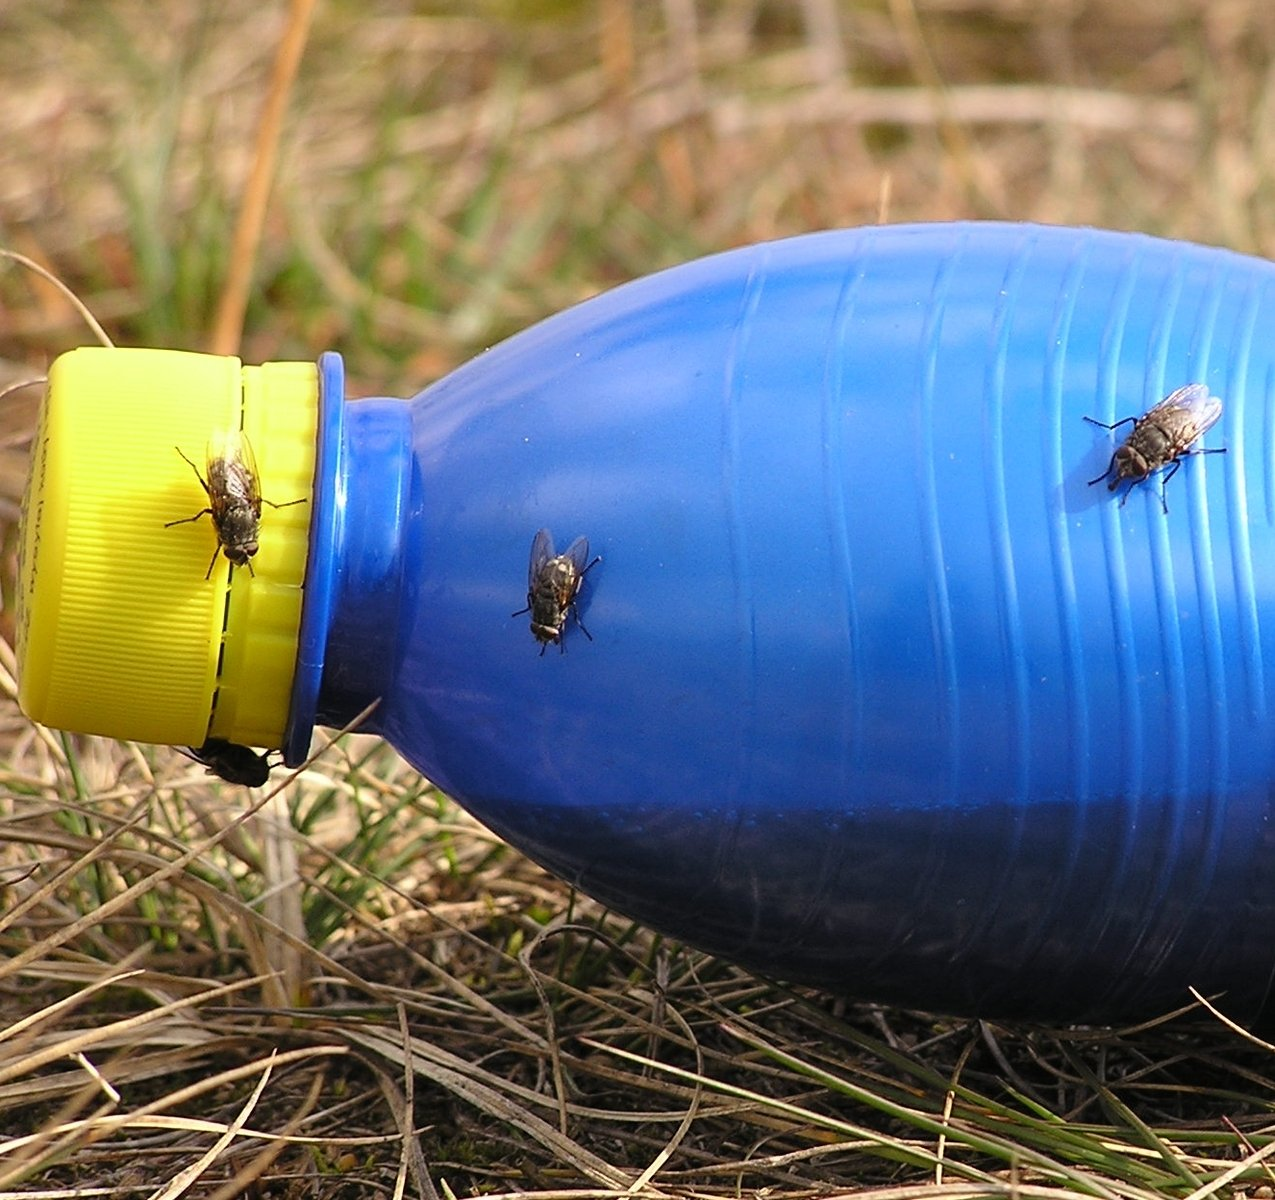 Some flies on a bottle-